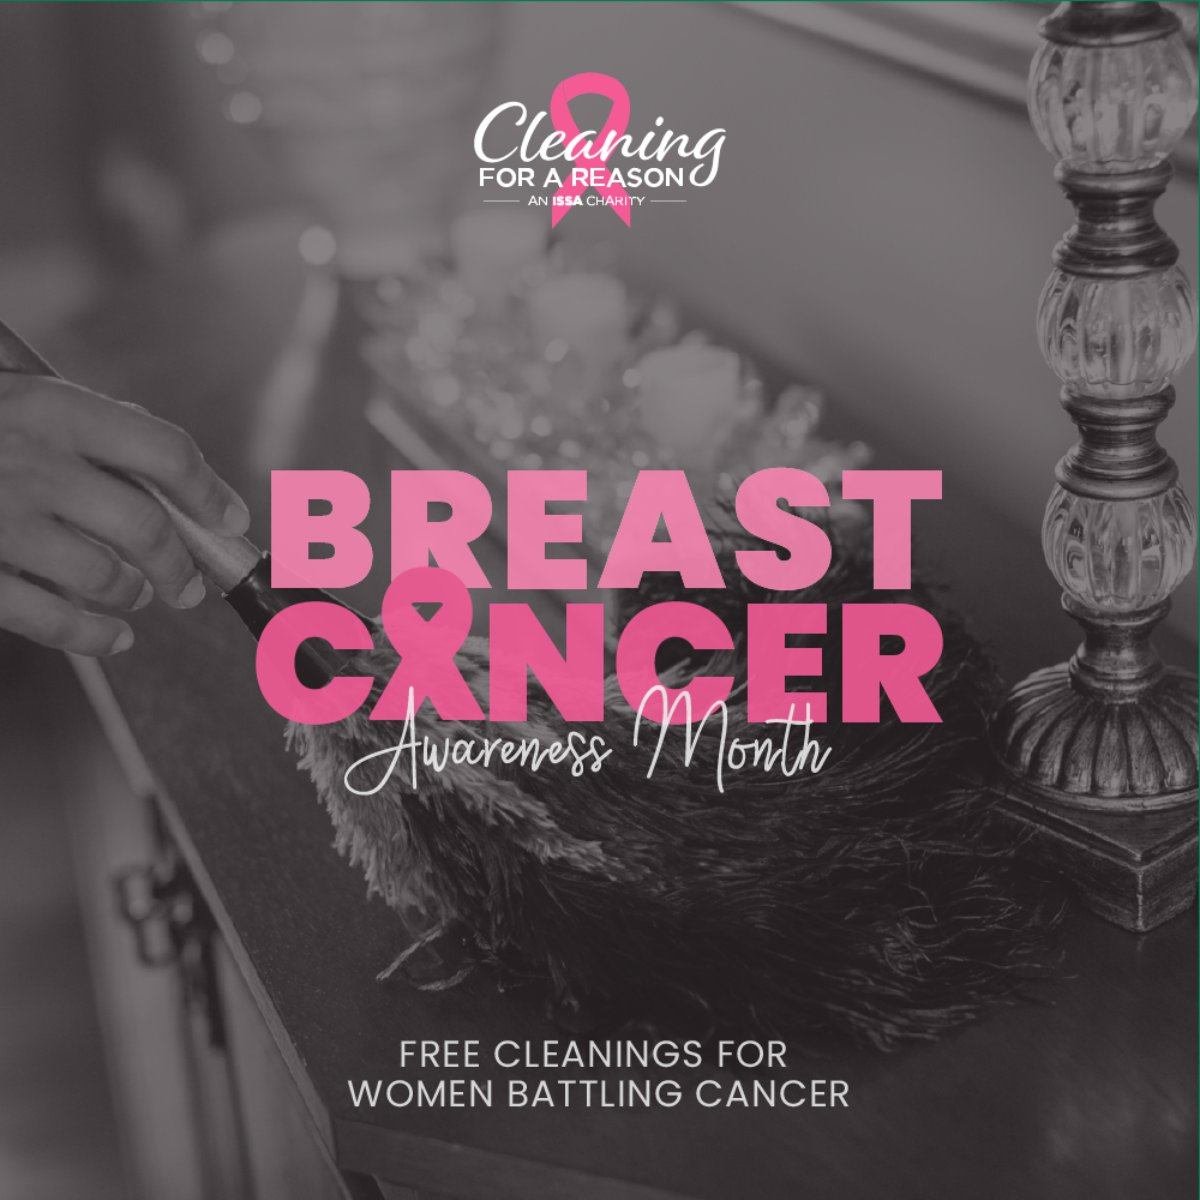 As a partner of Cleaning for A Reason Foundation, we offer free cleanings to women battling cancer. Contact us to find out more.pic.twitter.com/hPwHYx72pa